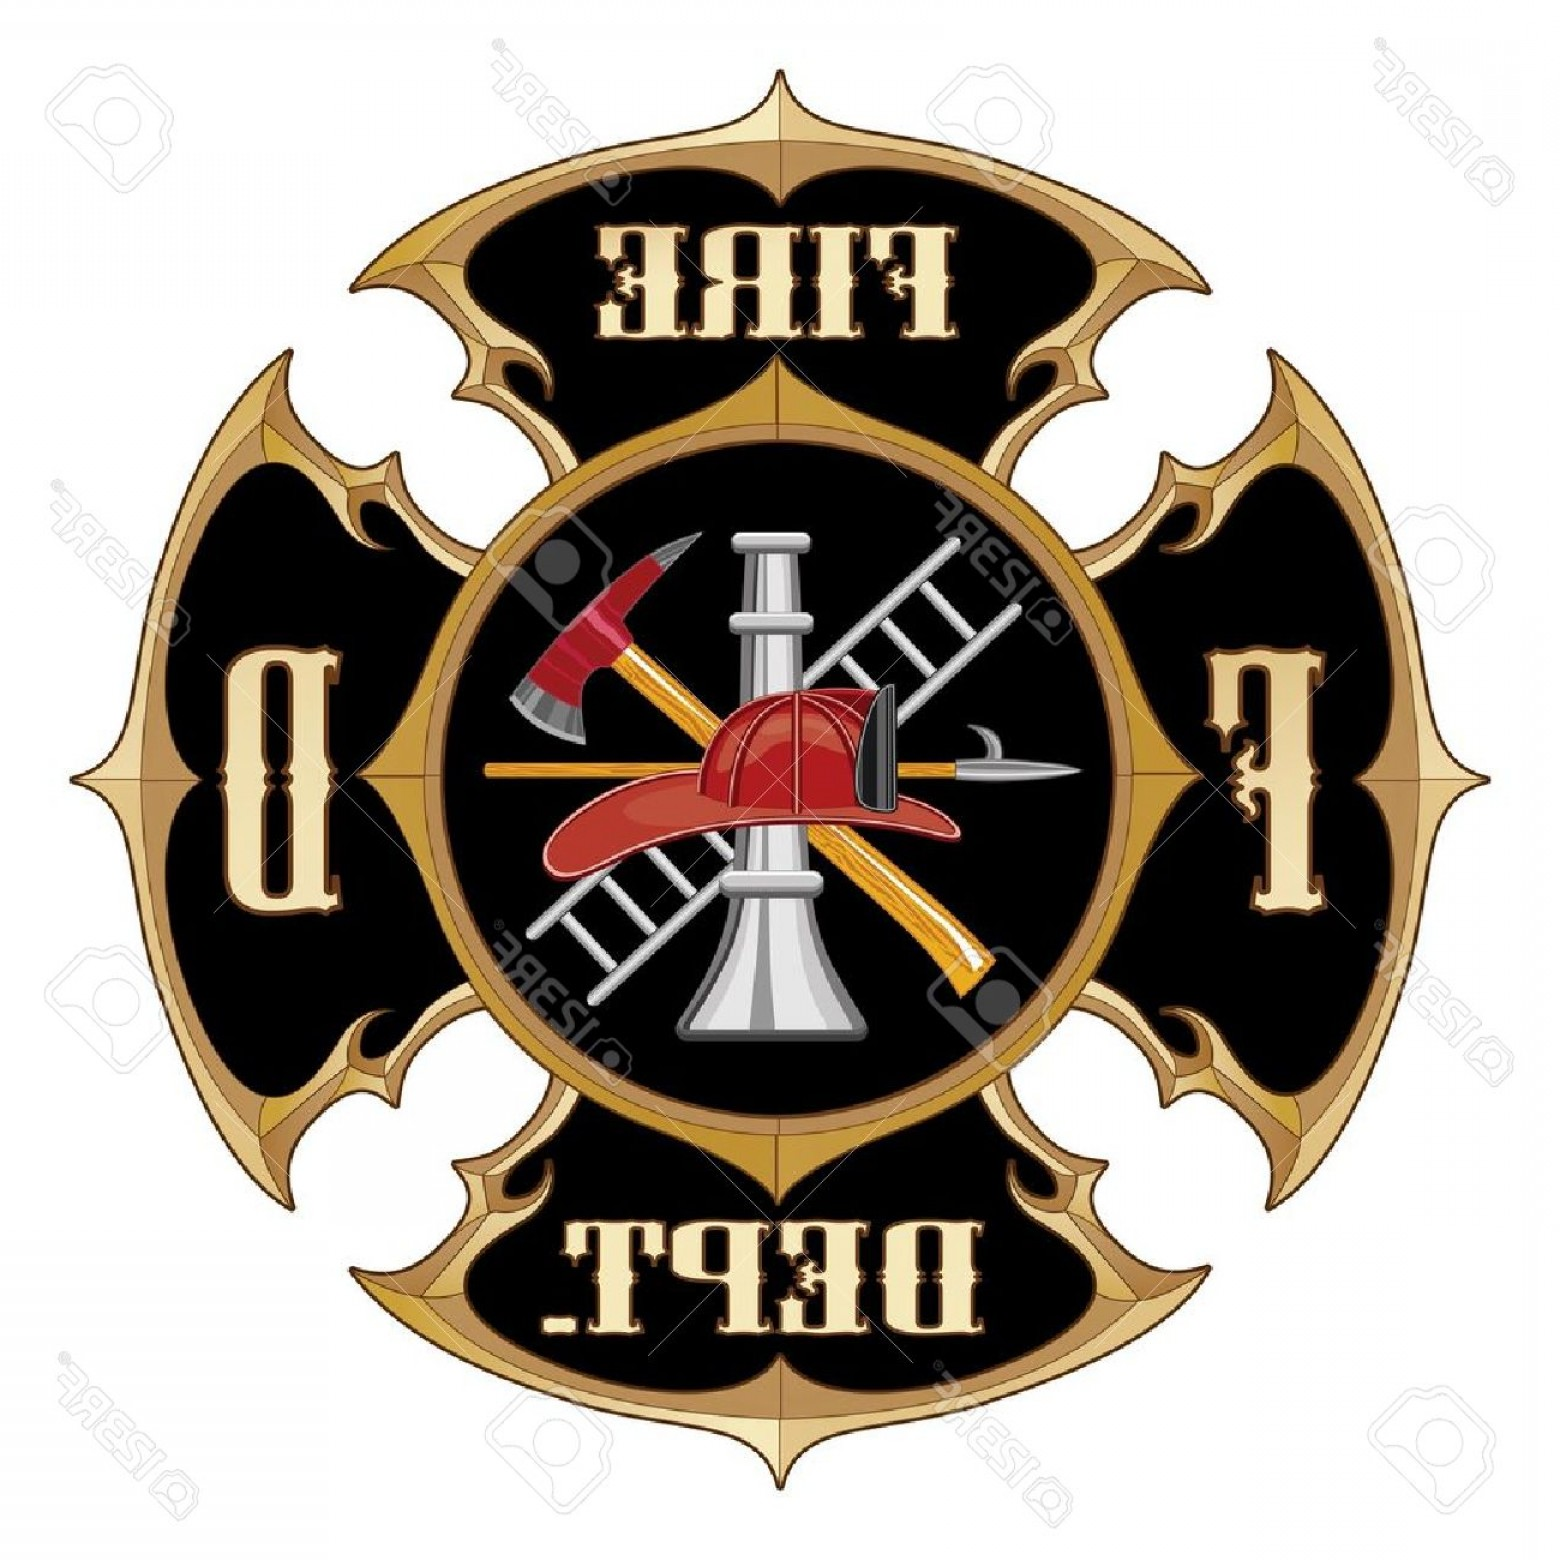 Fire Maltese Vector: Photofire Department Maltese Cross Vintage Is An Illustration Of A Vintage Fire Department Maltese Cross